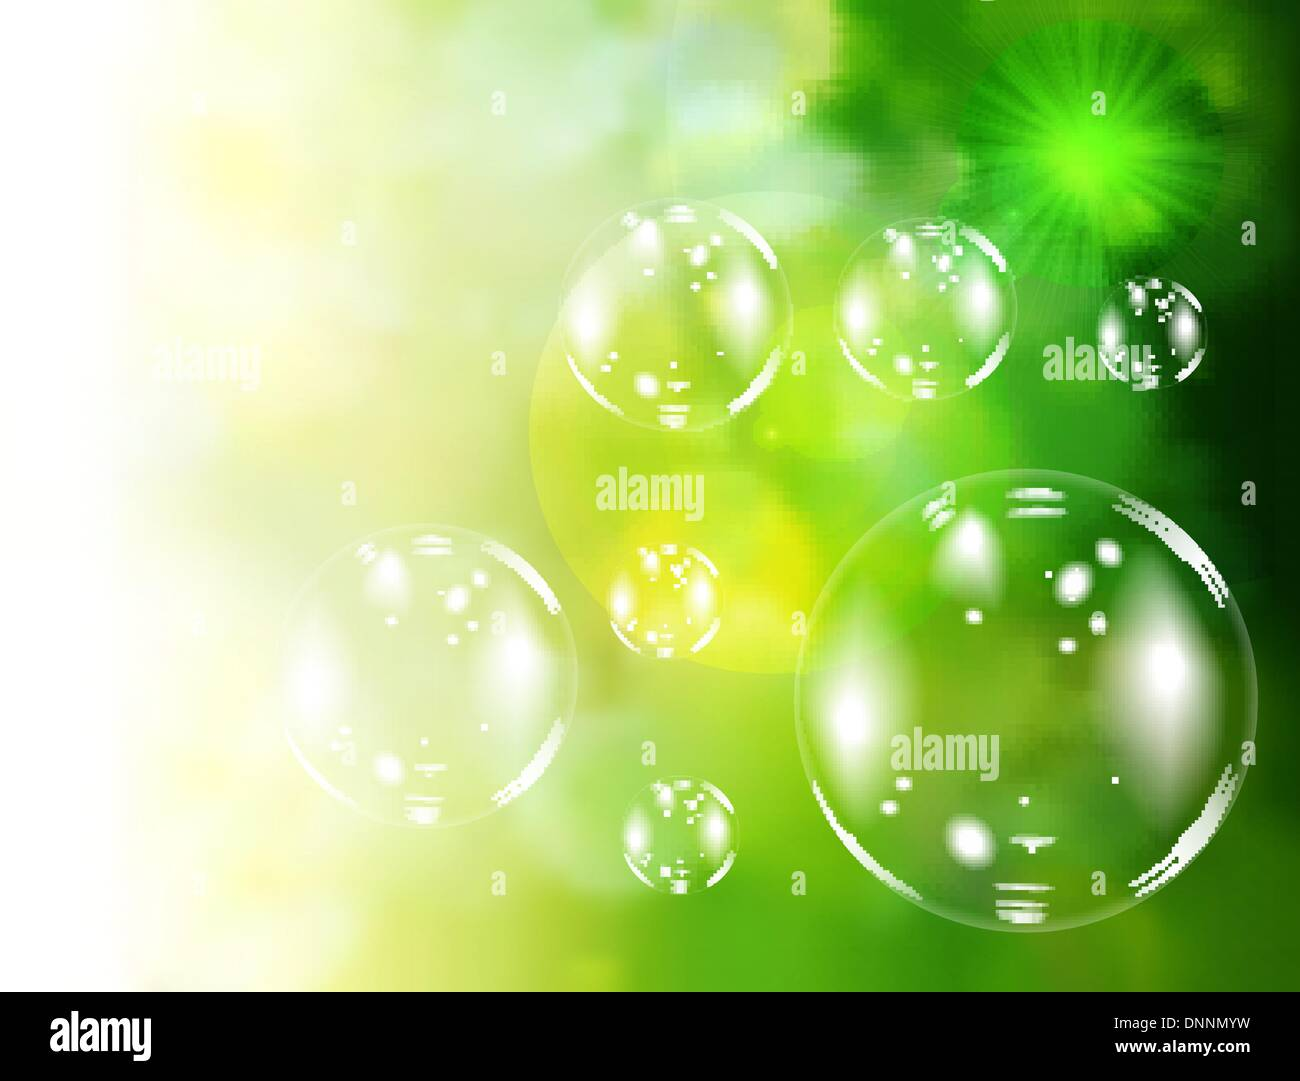 Soap bubbles on green natural background. Vector illustration - Stock Image